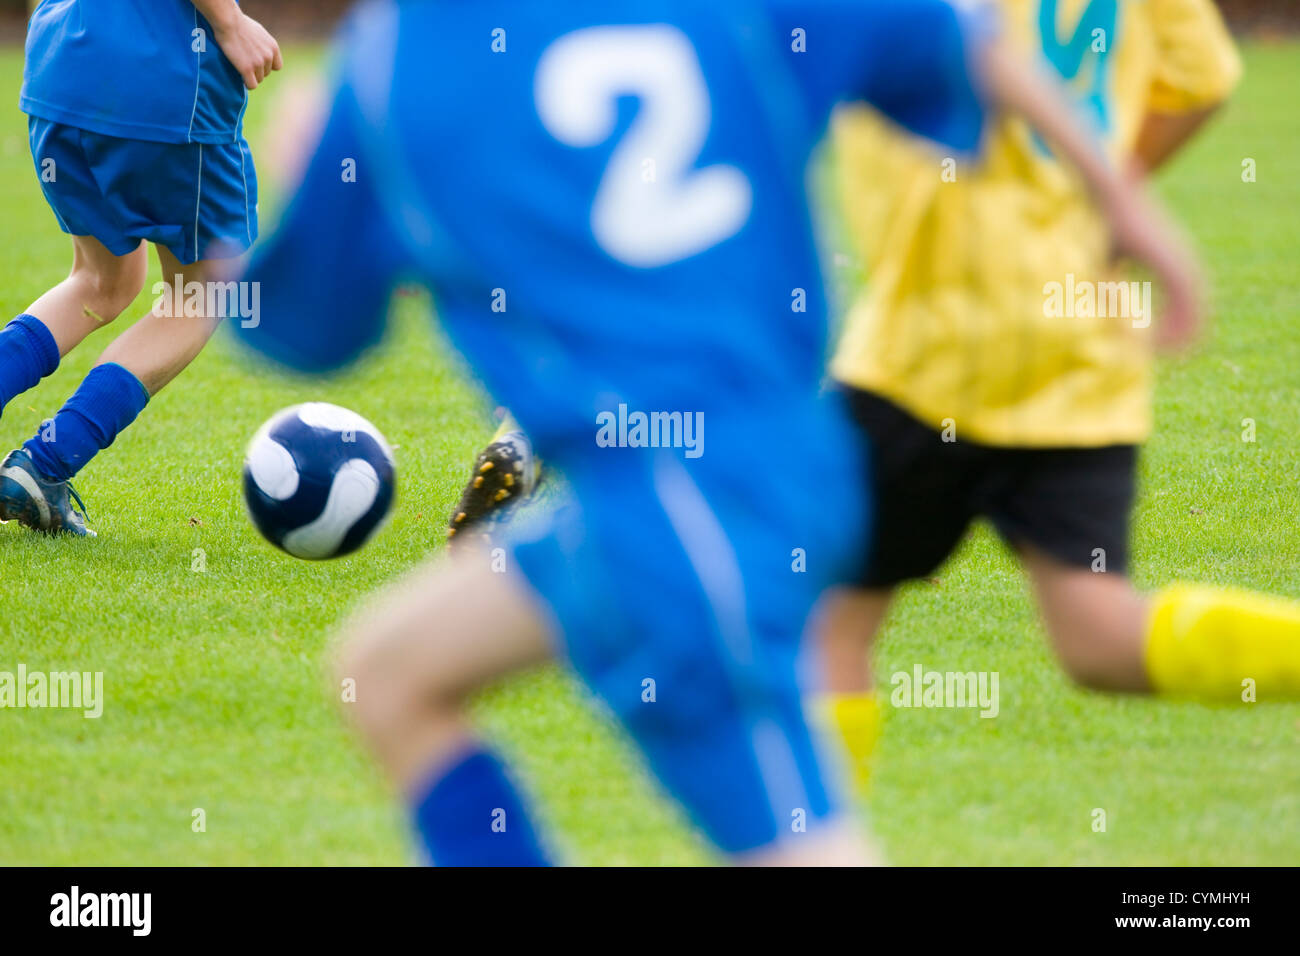 competitive price 52dbc 76c90 Camicie Gialle Immagini & Camicie Gialle Fotos Stock - Alamy